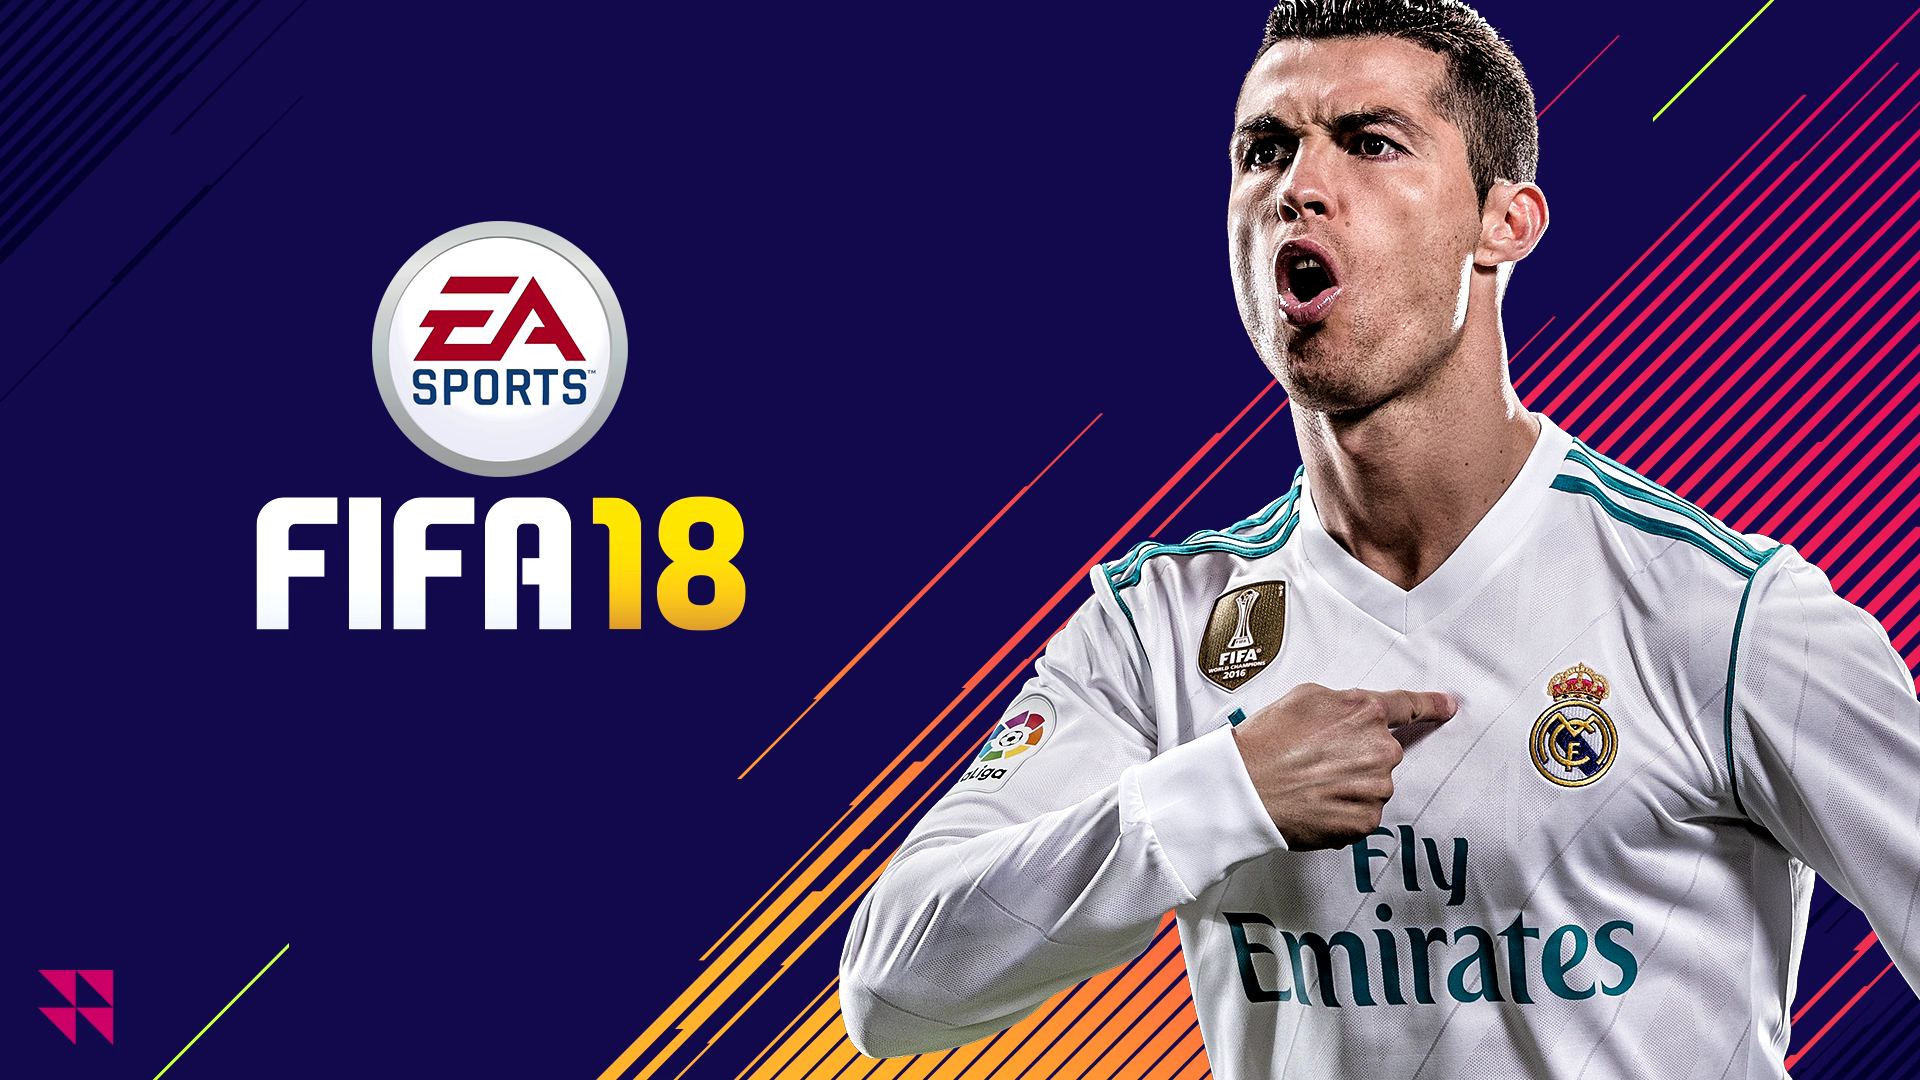 Fifa 18 Review Improved Core Features Add More Drama On